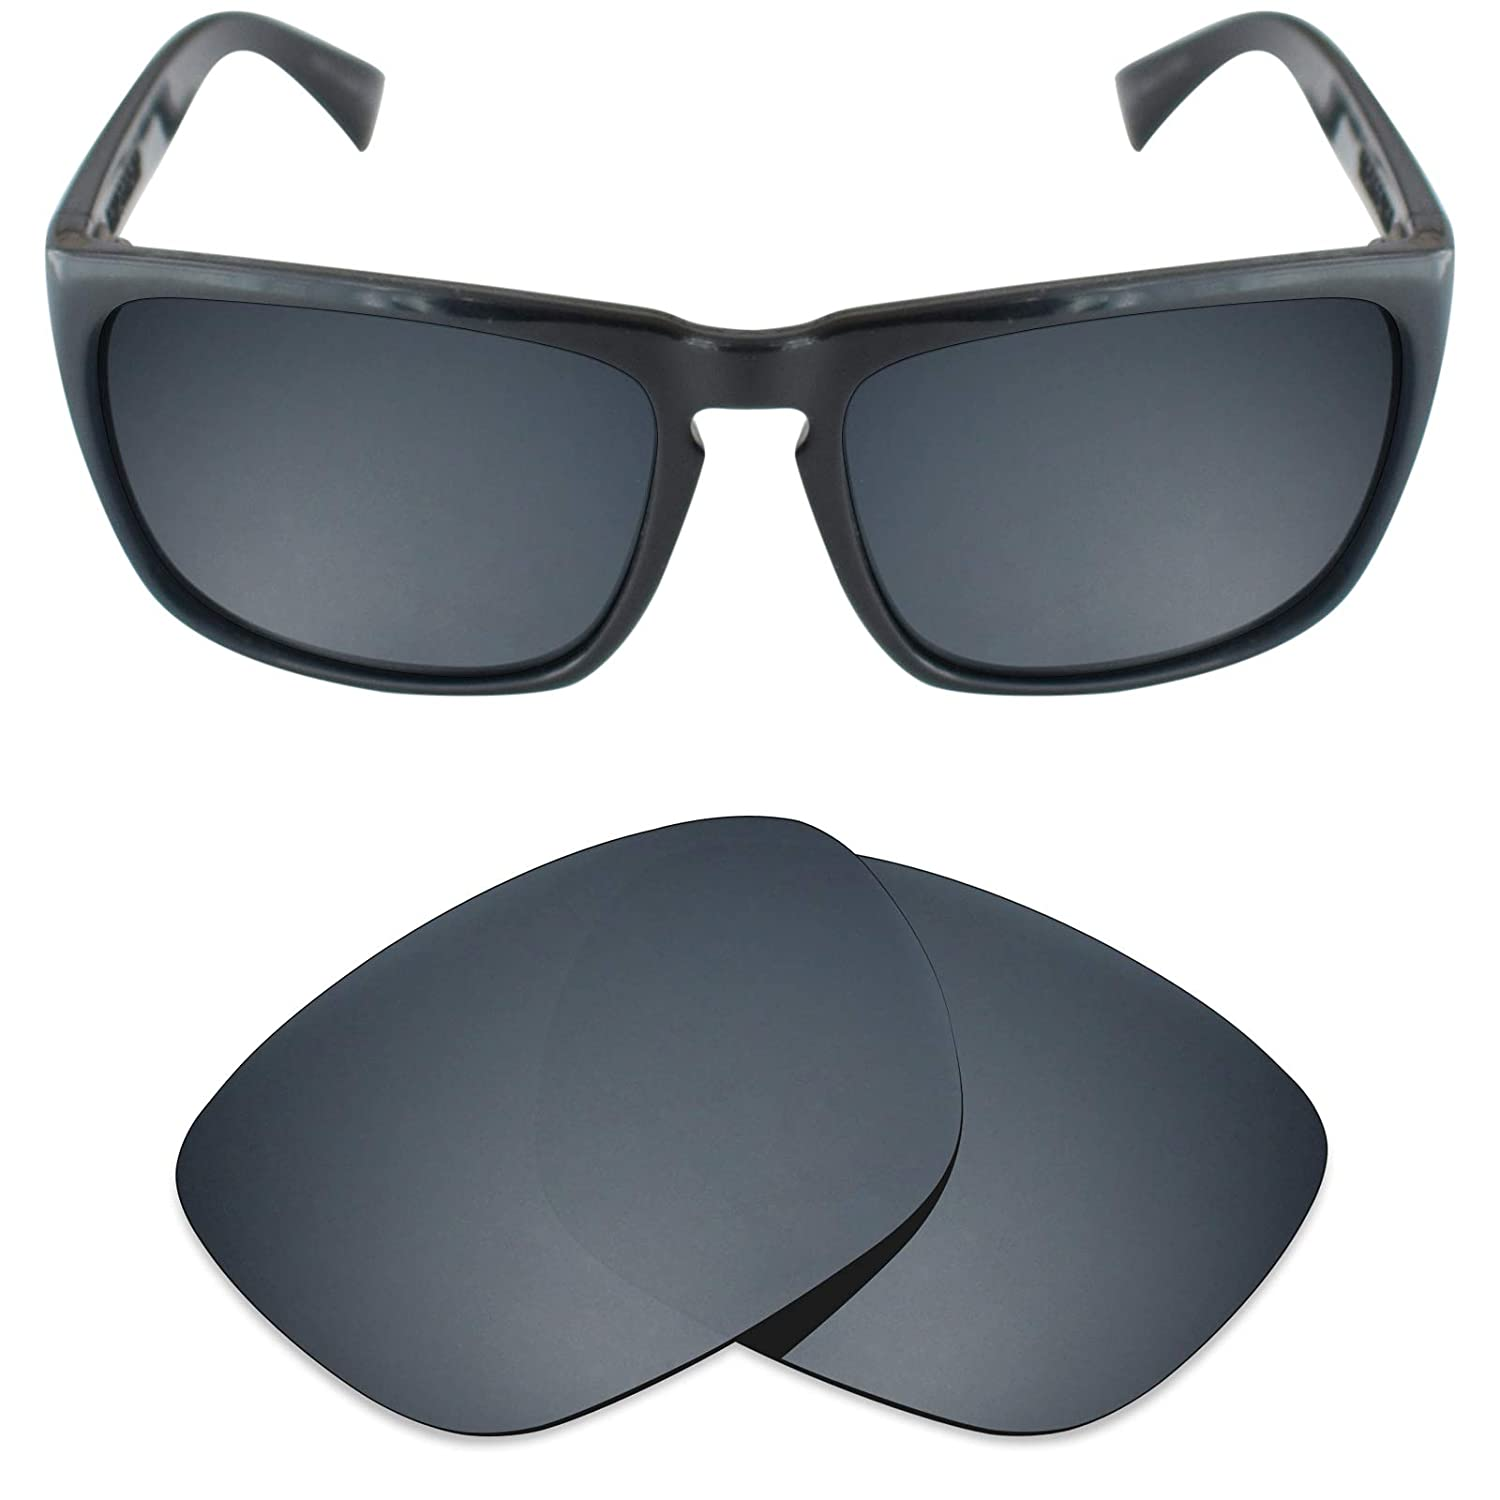 MRY POLARIZED Replacement Lenses for Electric Knoxville XL Sunglasses MryLens EC03KBI14B